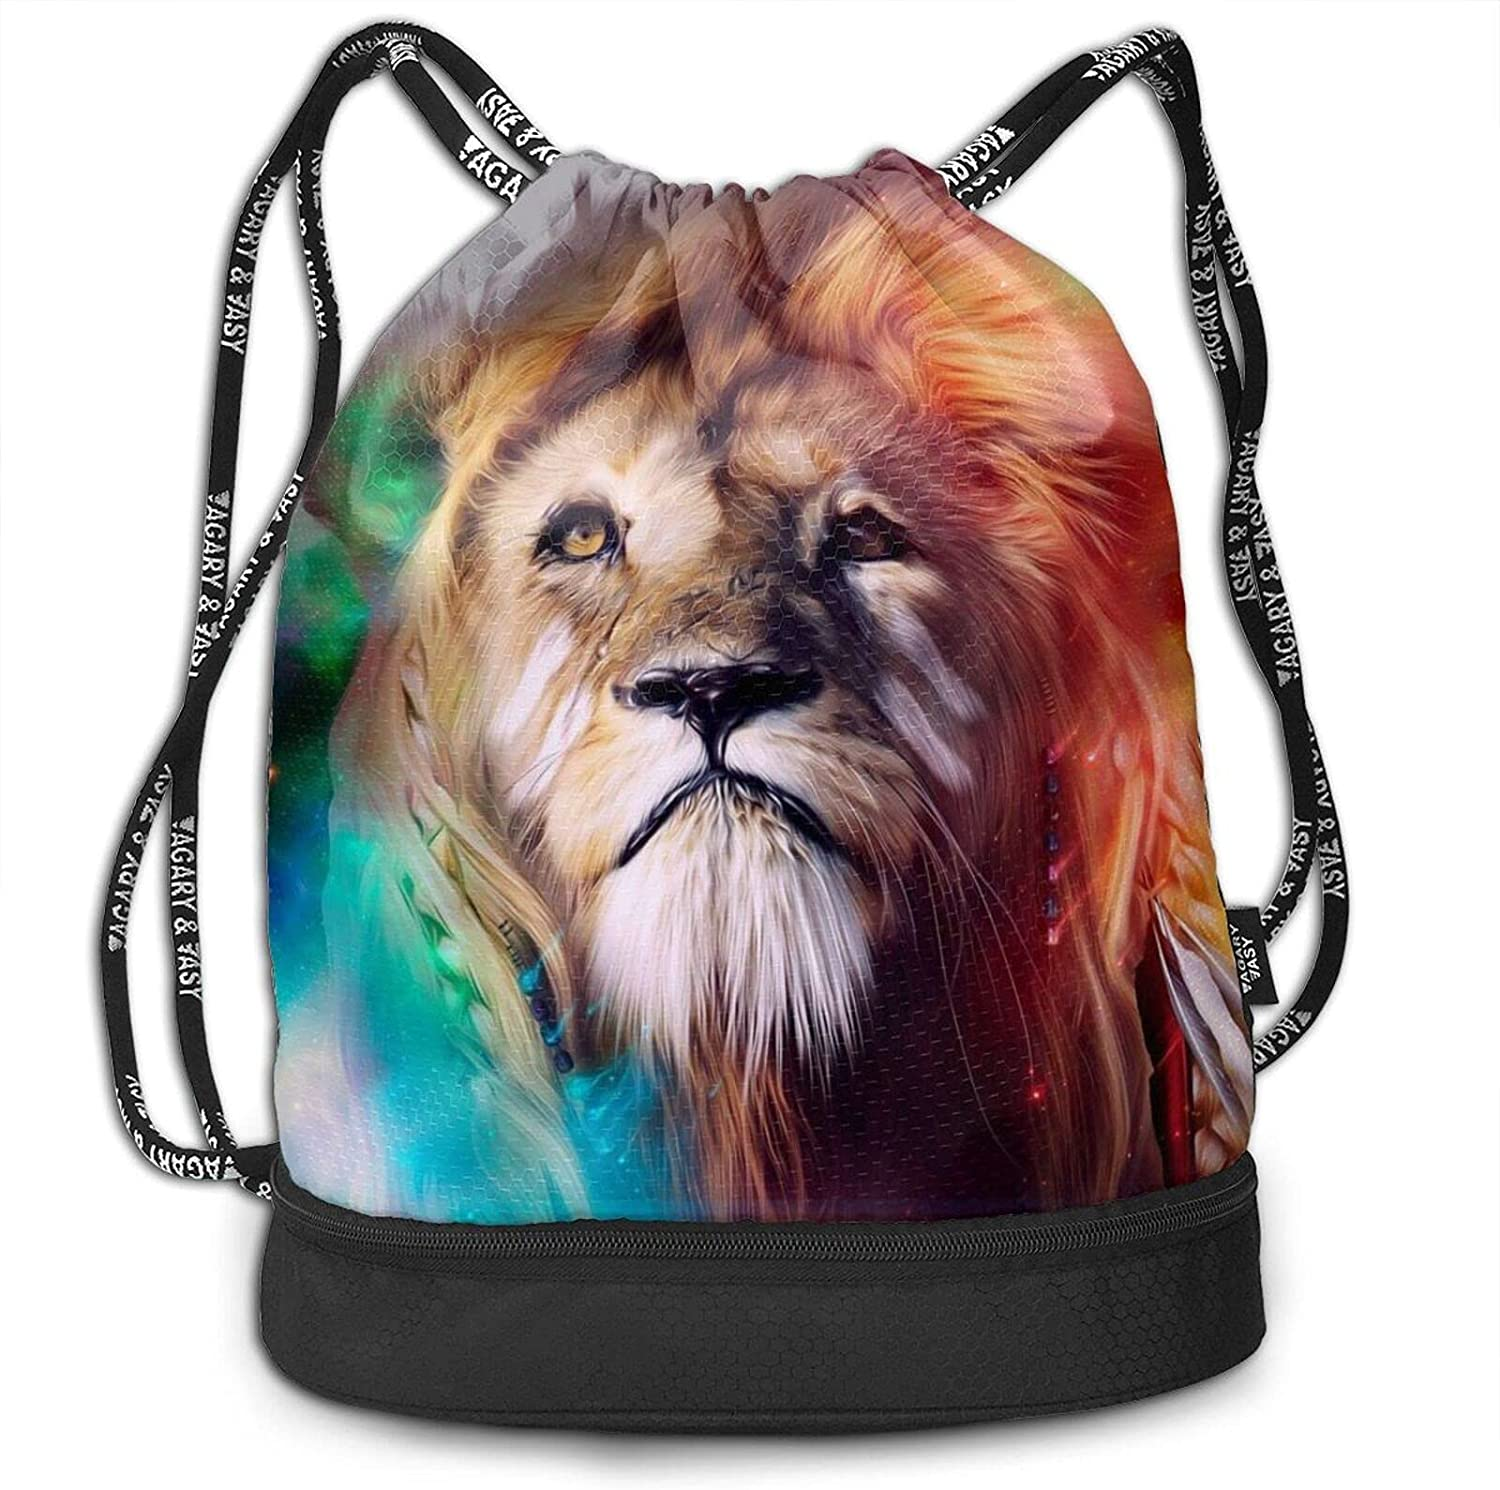 Drawstrings Backpack Bag Colorful Lion Printed Long-awaited Water Resistant Purchase